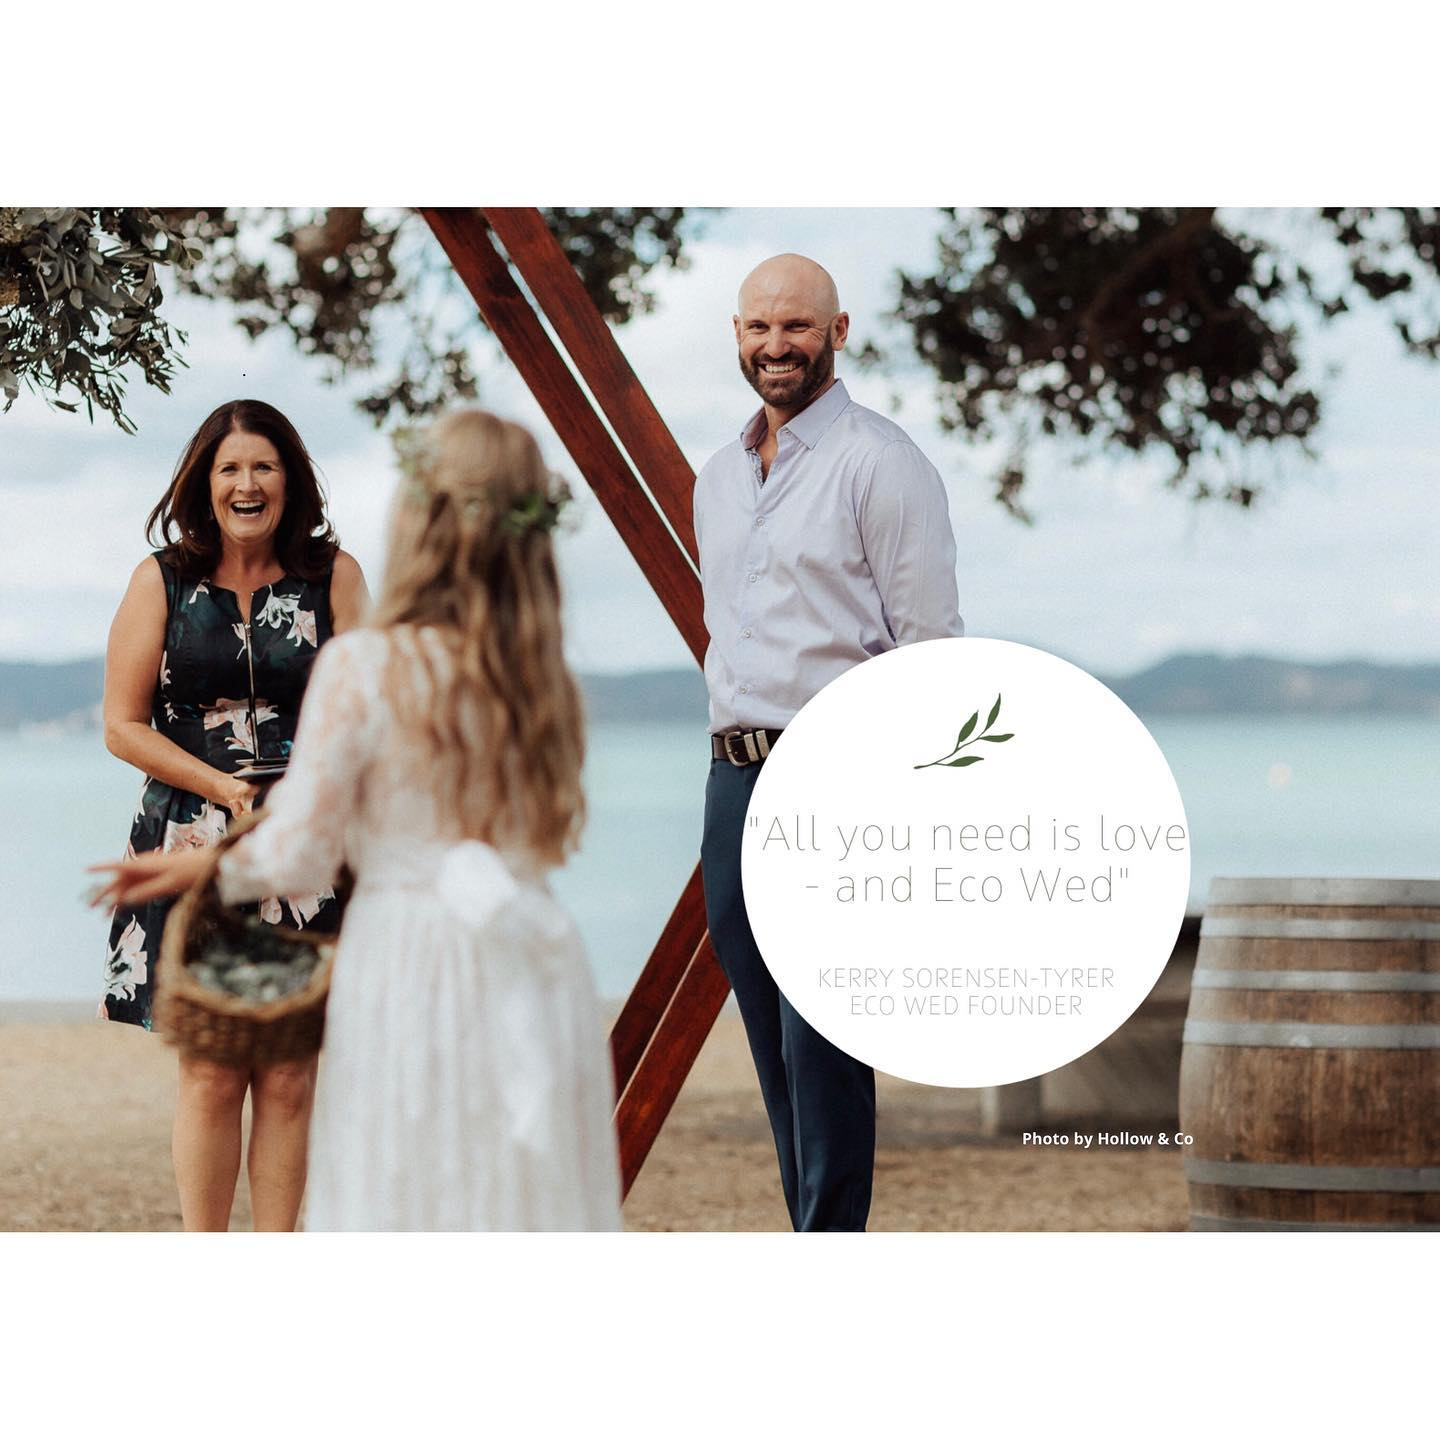 Eco Wed - Small and Intimate Weddings for the Earth Friendly Couple Auckland